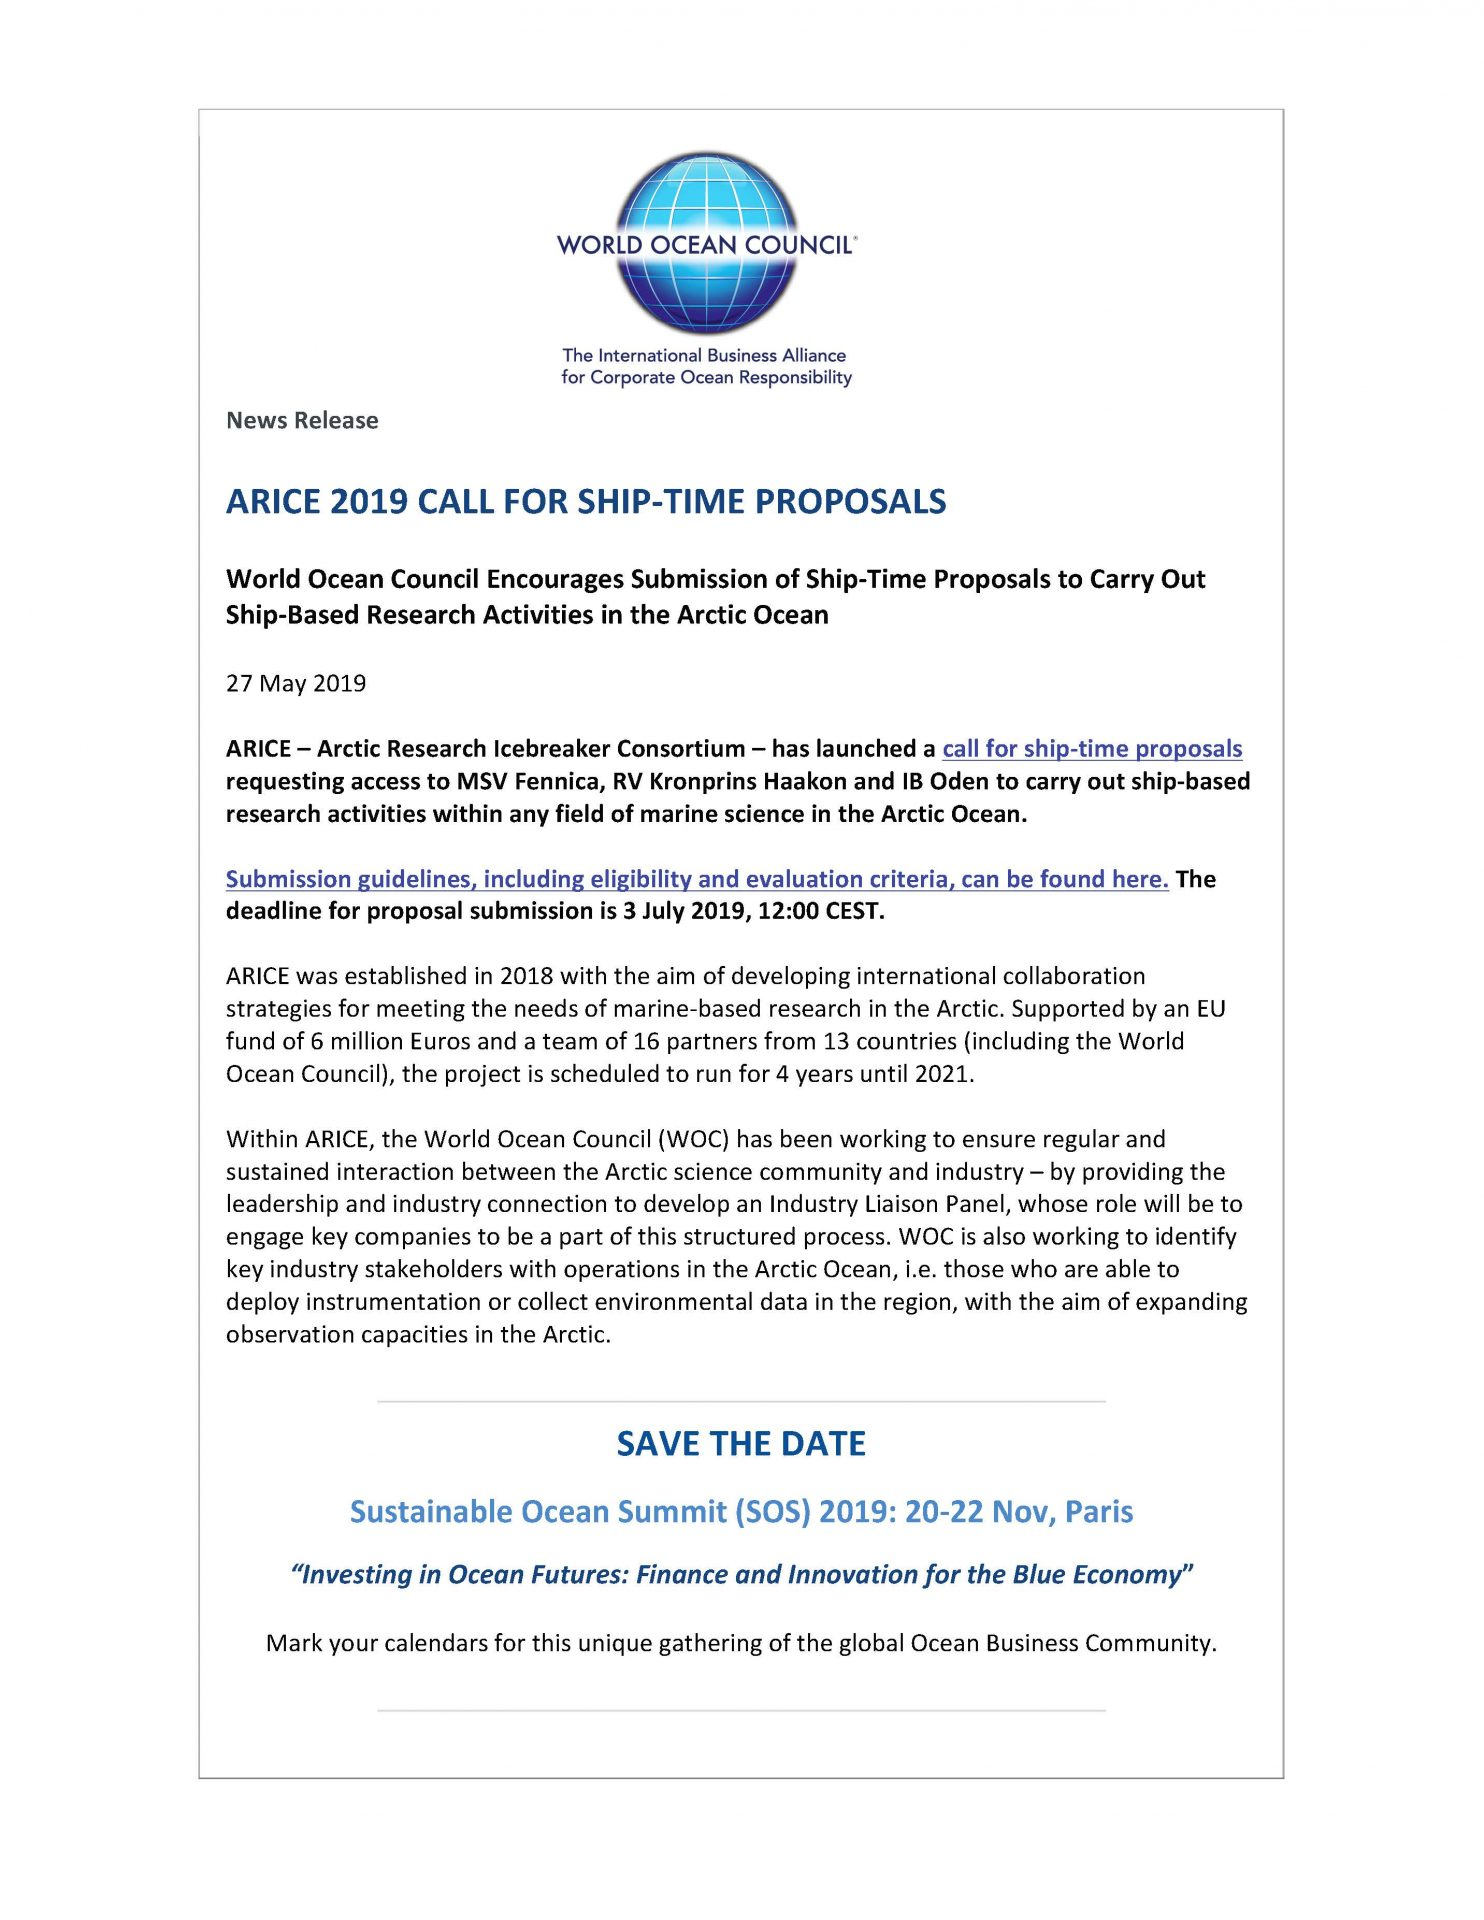 ARICE 2019 Call for Ship-Time Proposals - 27 May 2019